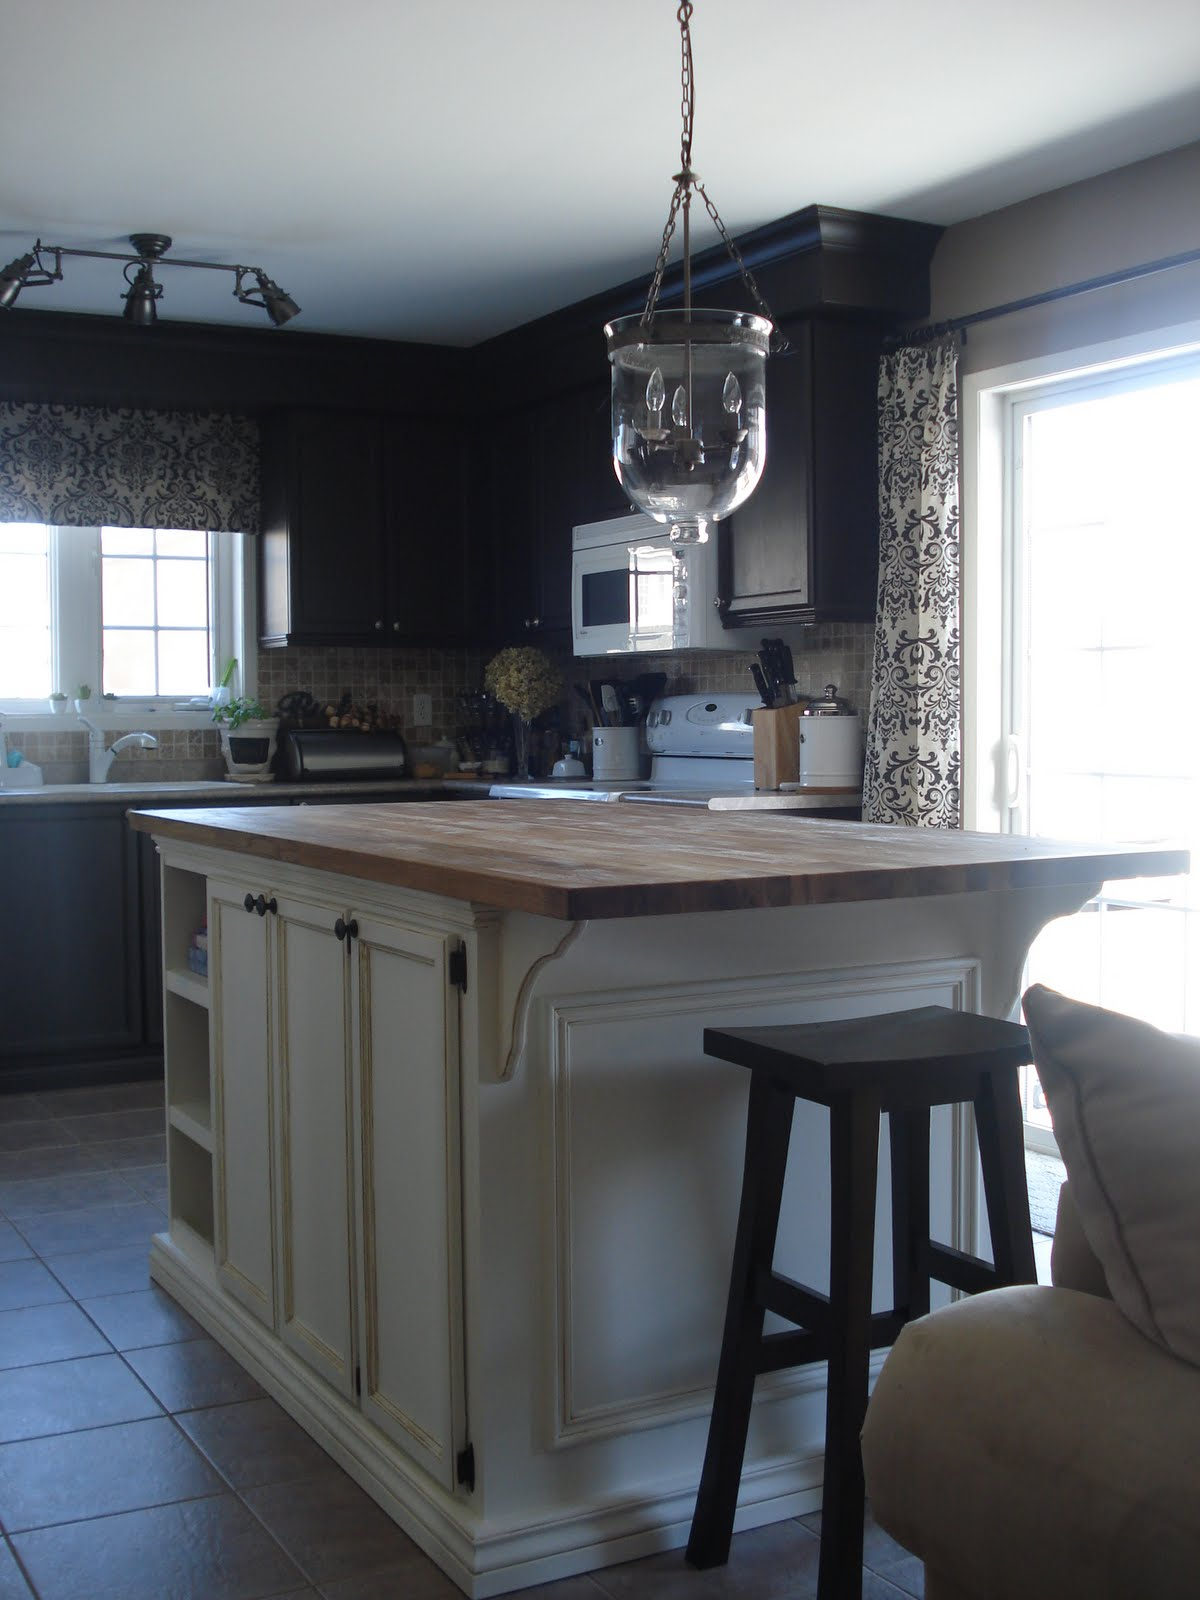 kijiji kitchen island white wood 2010 projects re cap part 2 2102